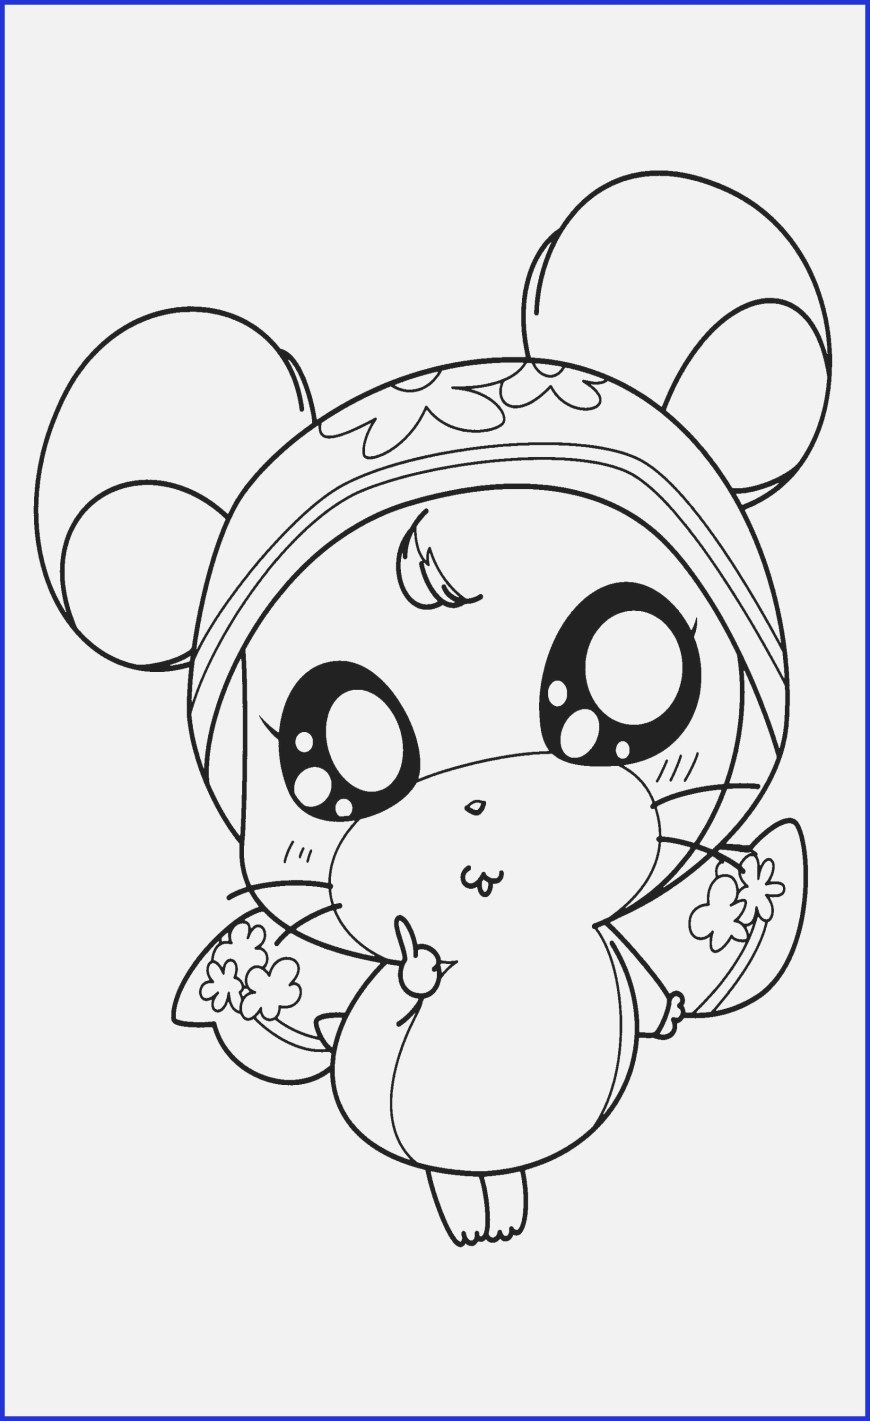 Nick Jr Coloring Pages Nickelodeon Coloring Pages To Print Beautiful Nick Jr Coloring